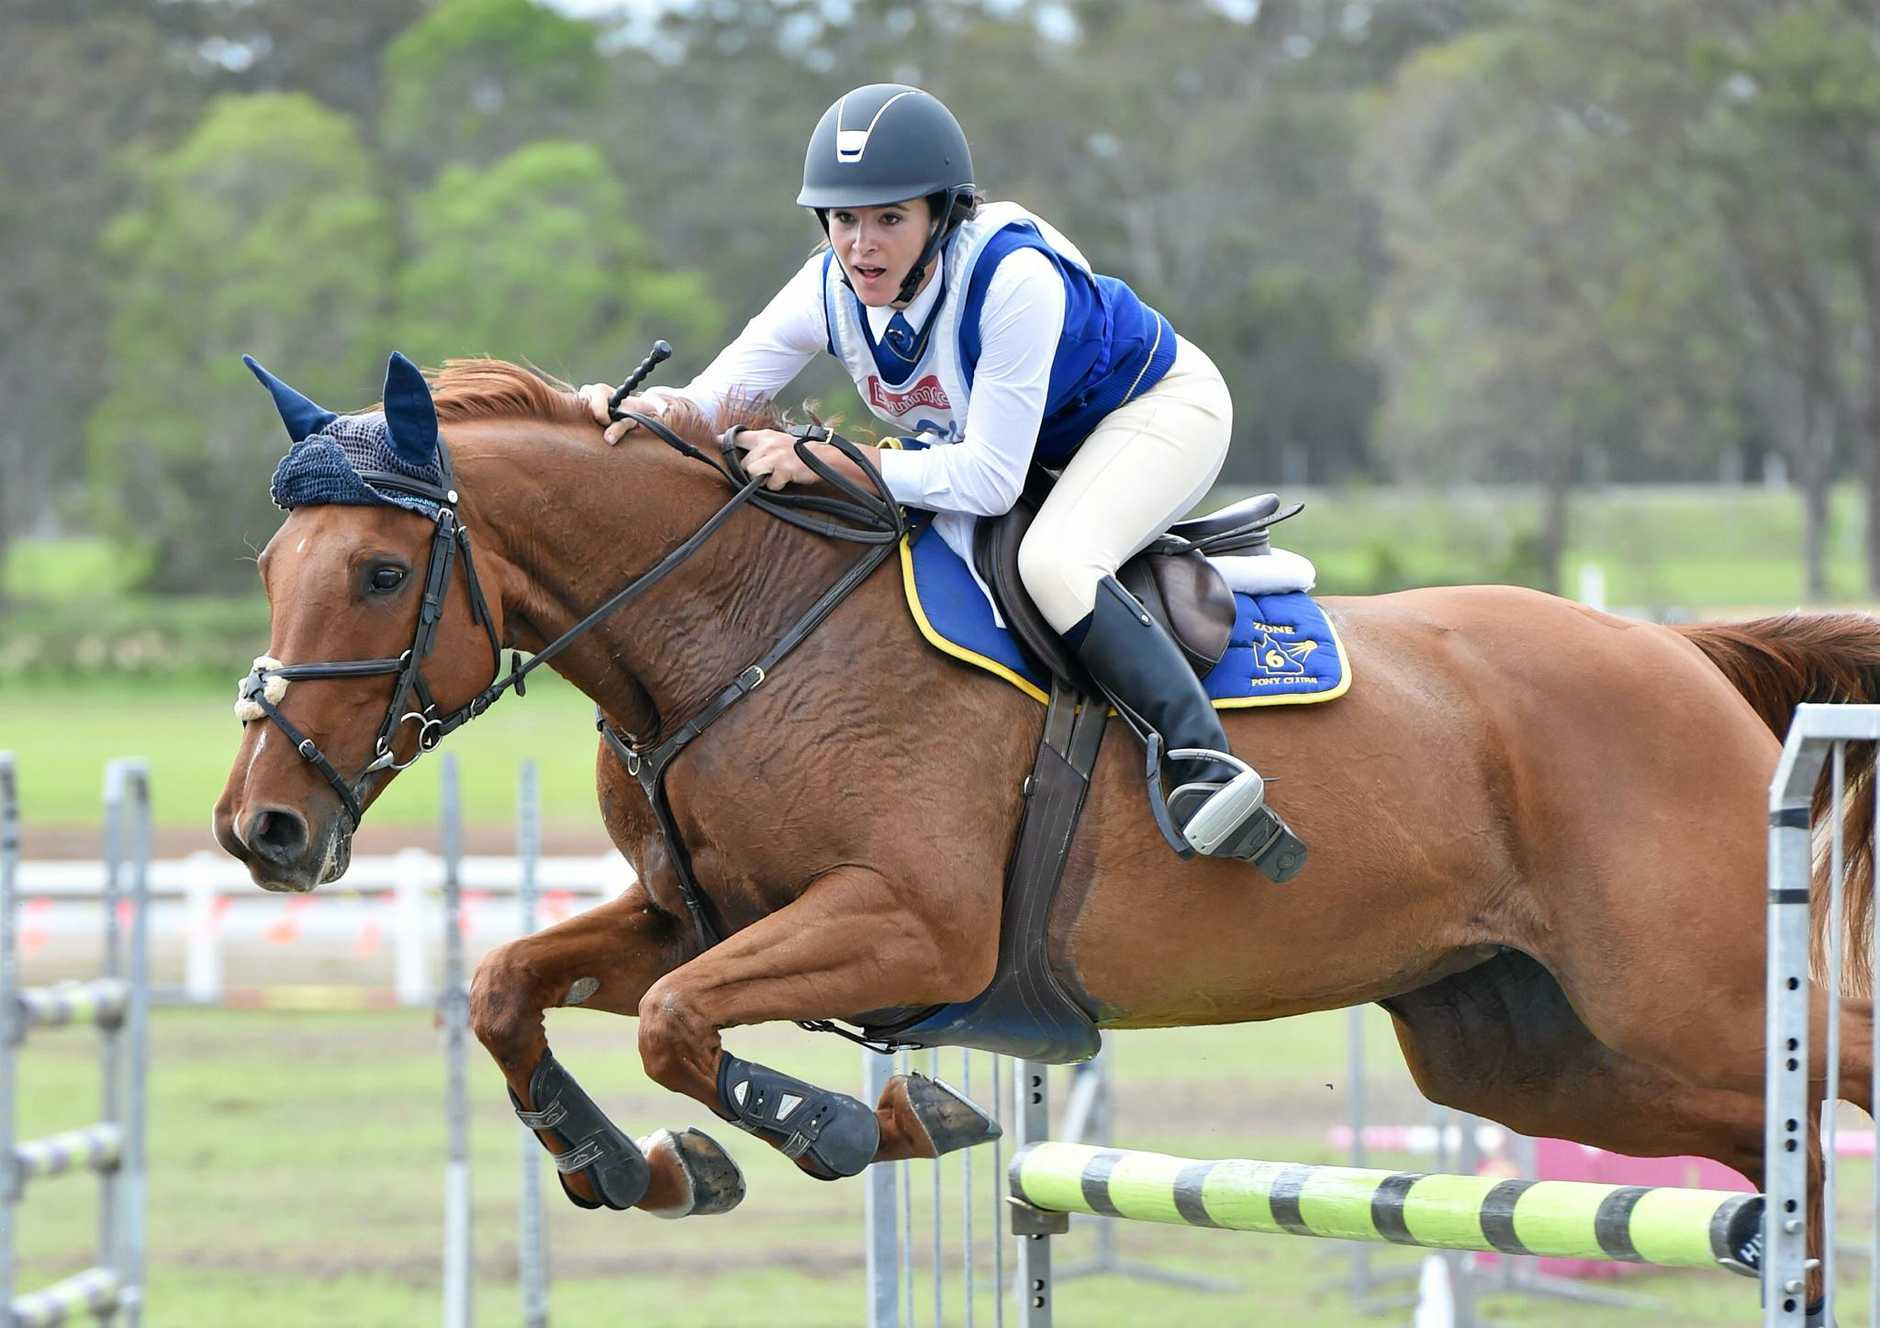 2017 PCQ State Showjumping and Equitation Championships at Maryborough showgrounds - 100cm grand prix 13 yrs & over. Bree Wiblen on Holmwood Flare from Nambour shows her form to win the event.